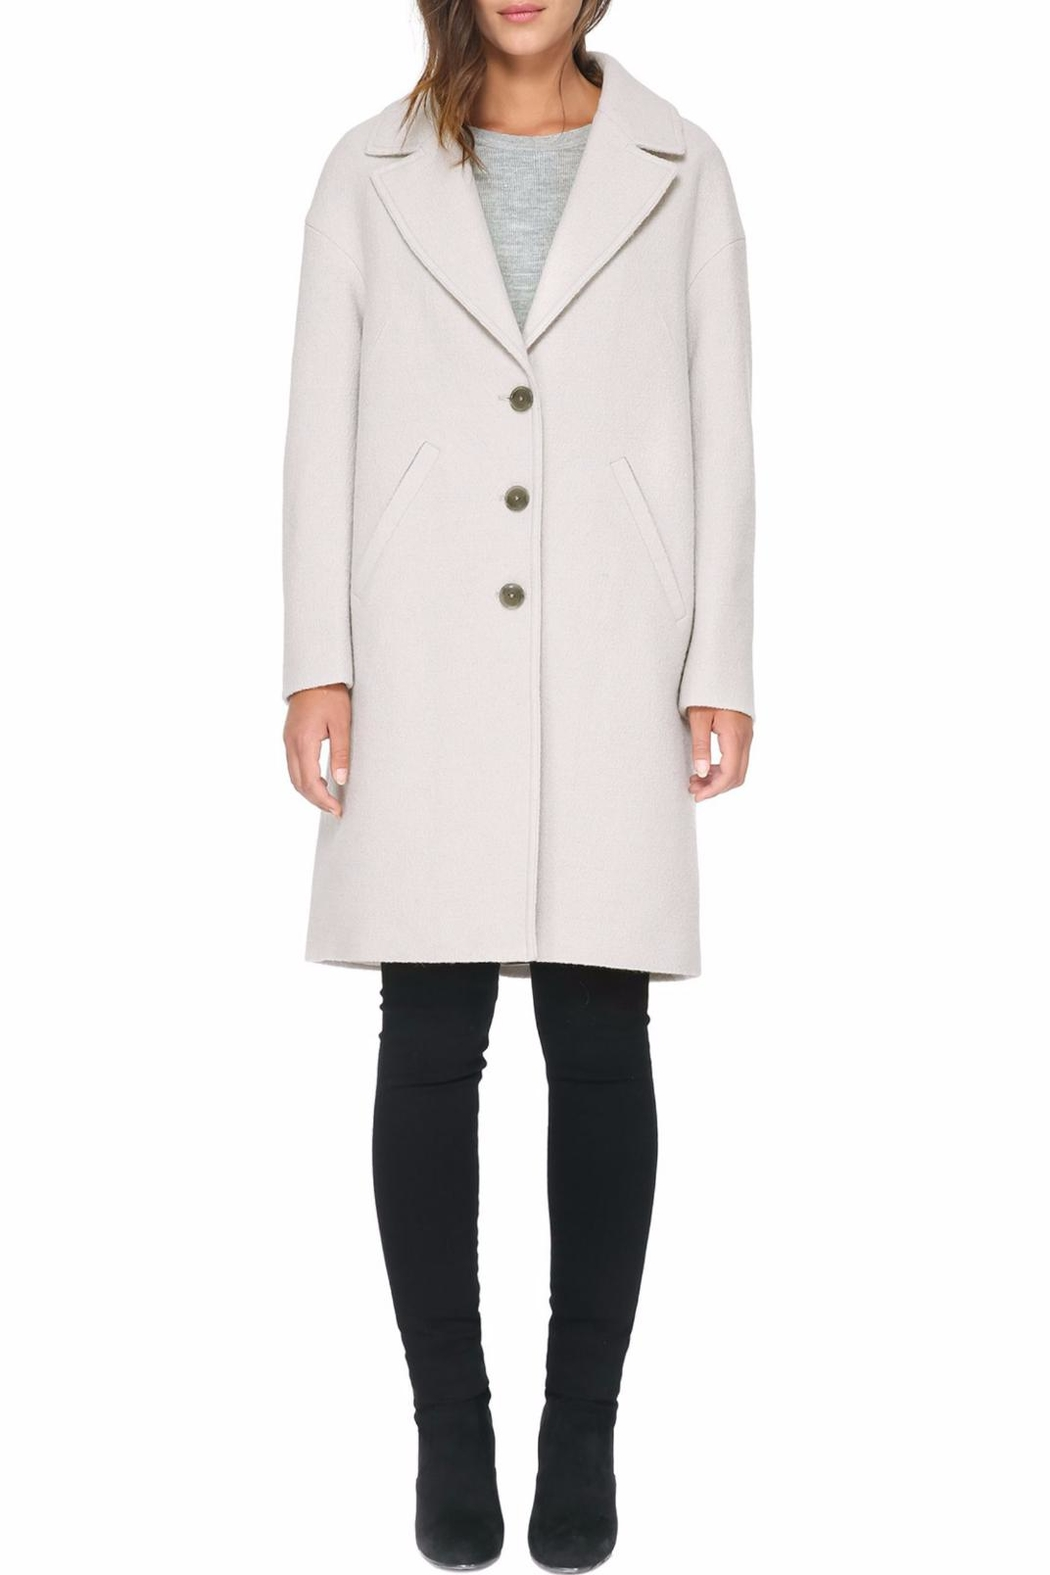 Soia & Kyo Christelle Fx Wool Coat - Back Cropped Image